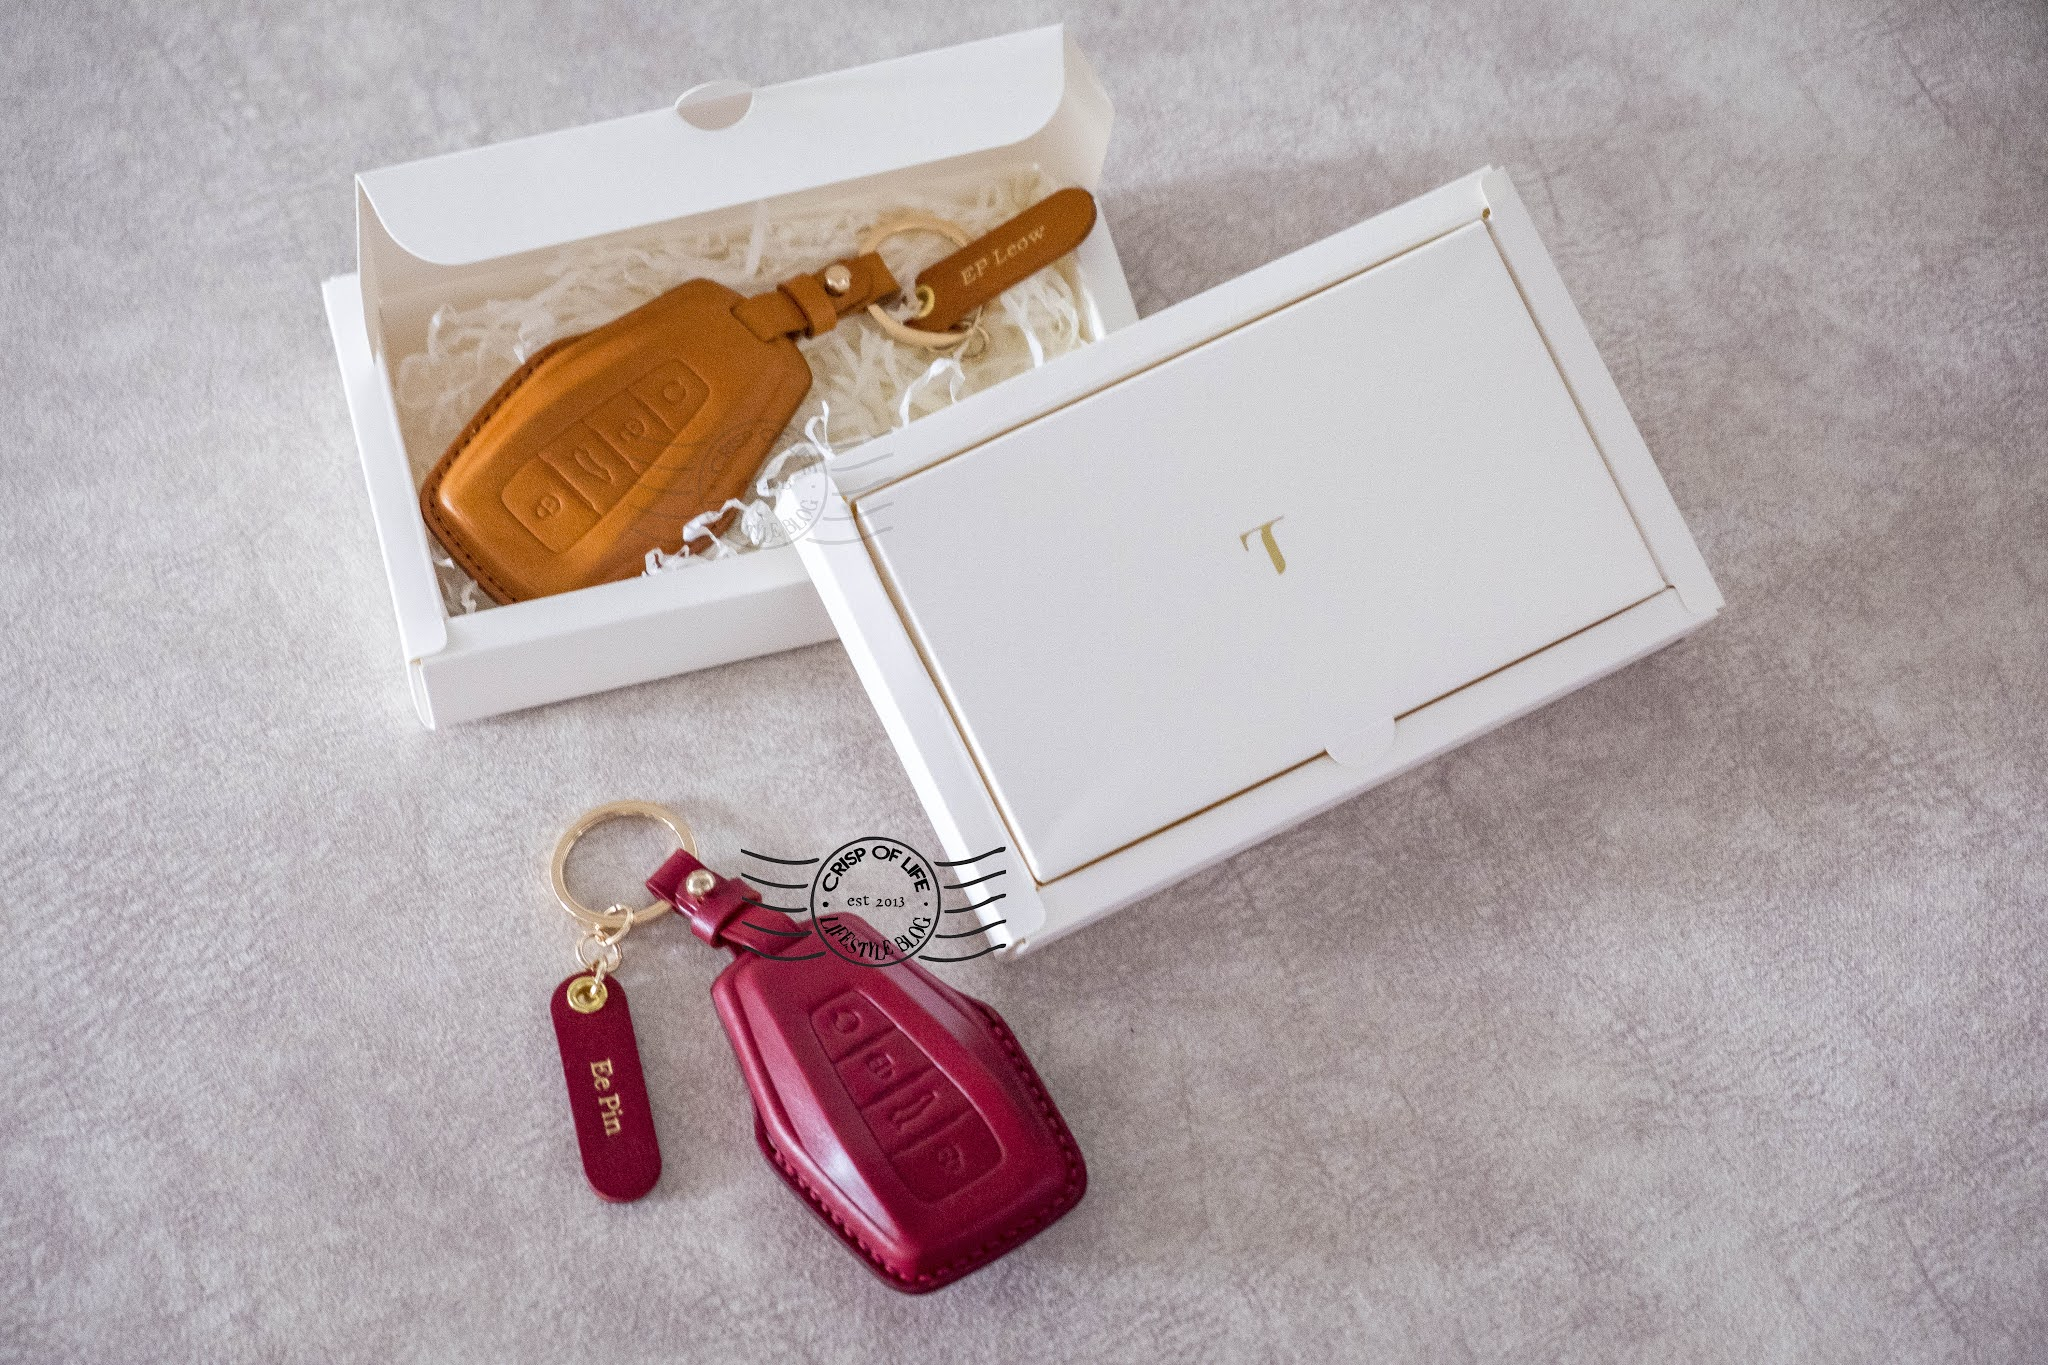 Customized Leather Car Key Sleeve from TYDE